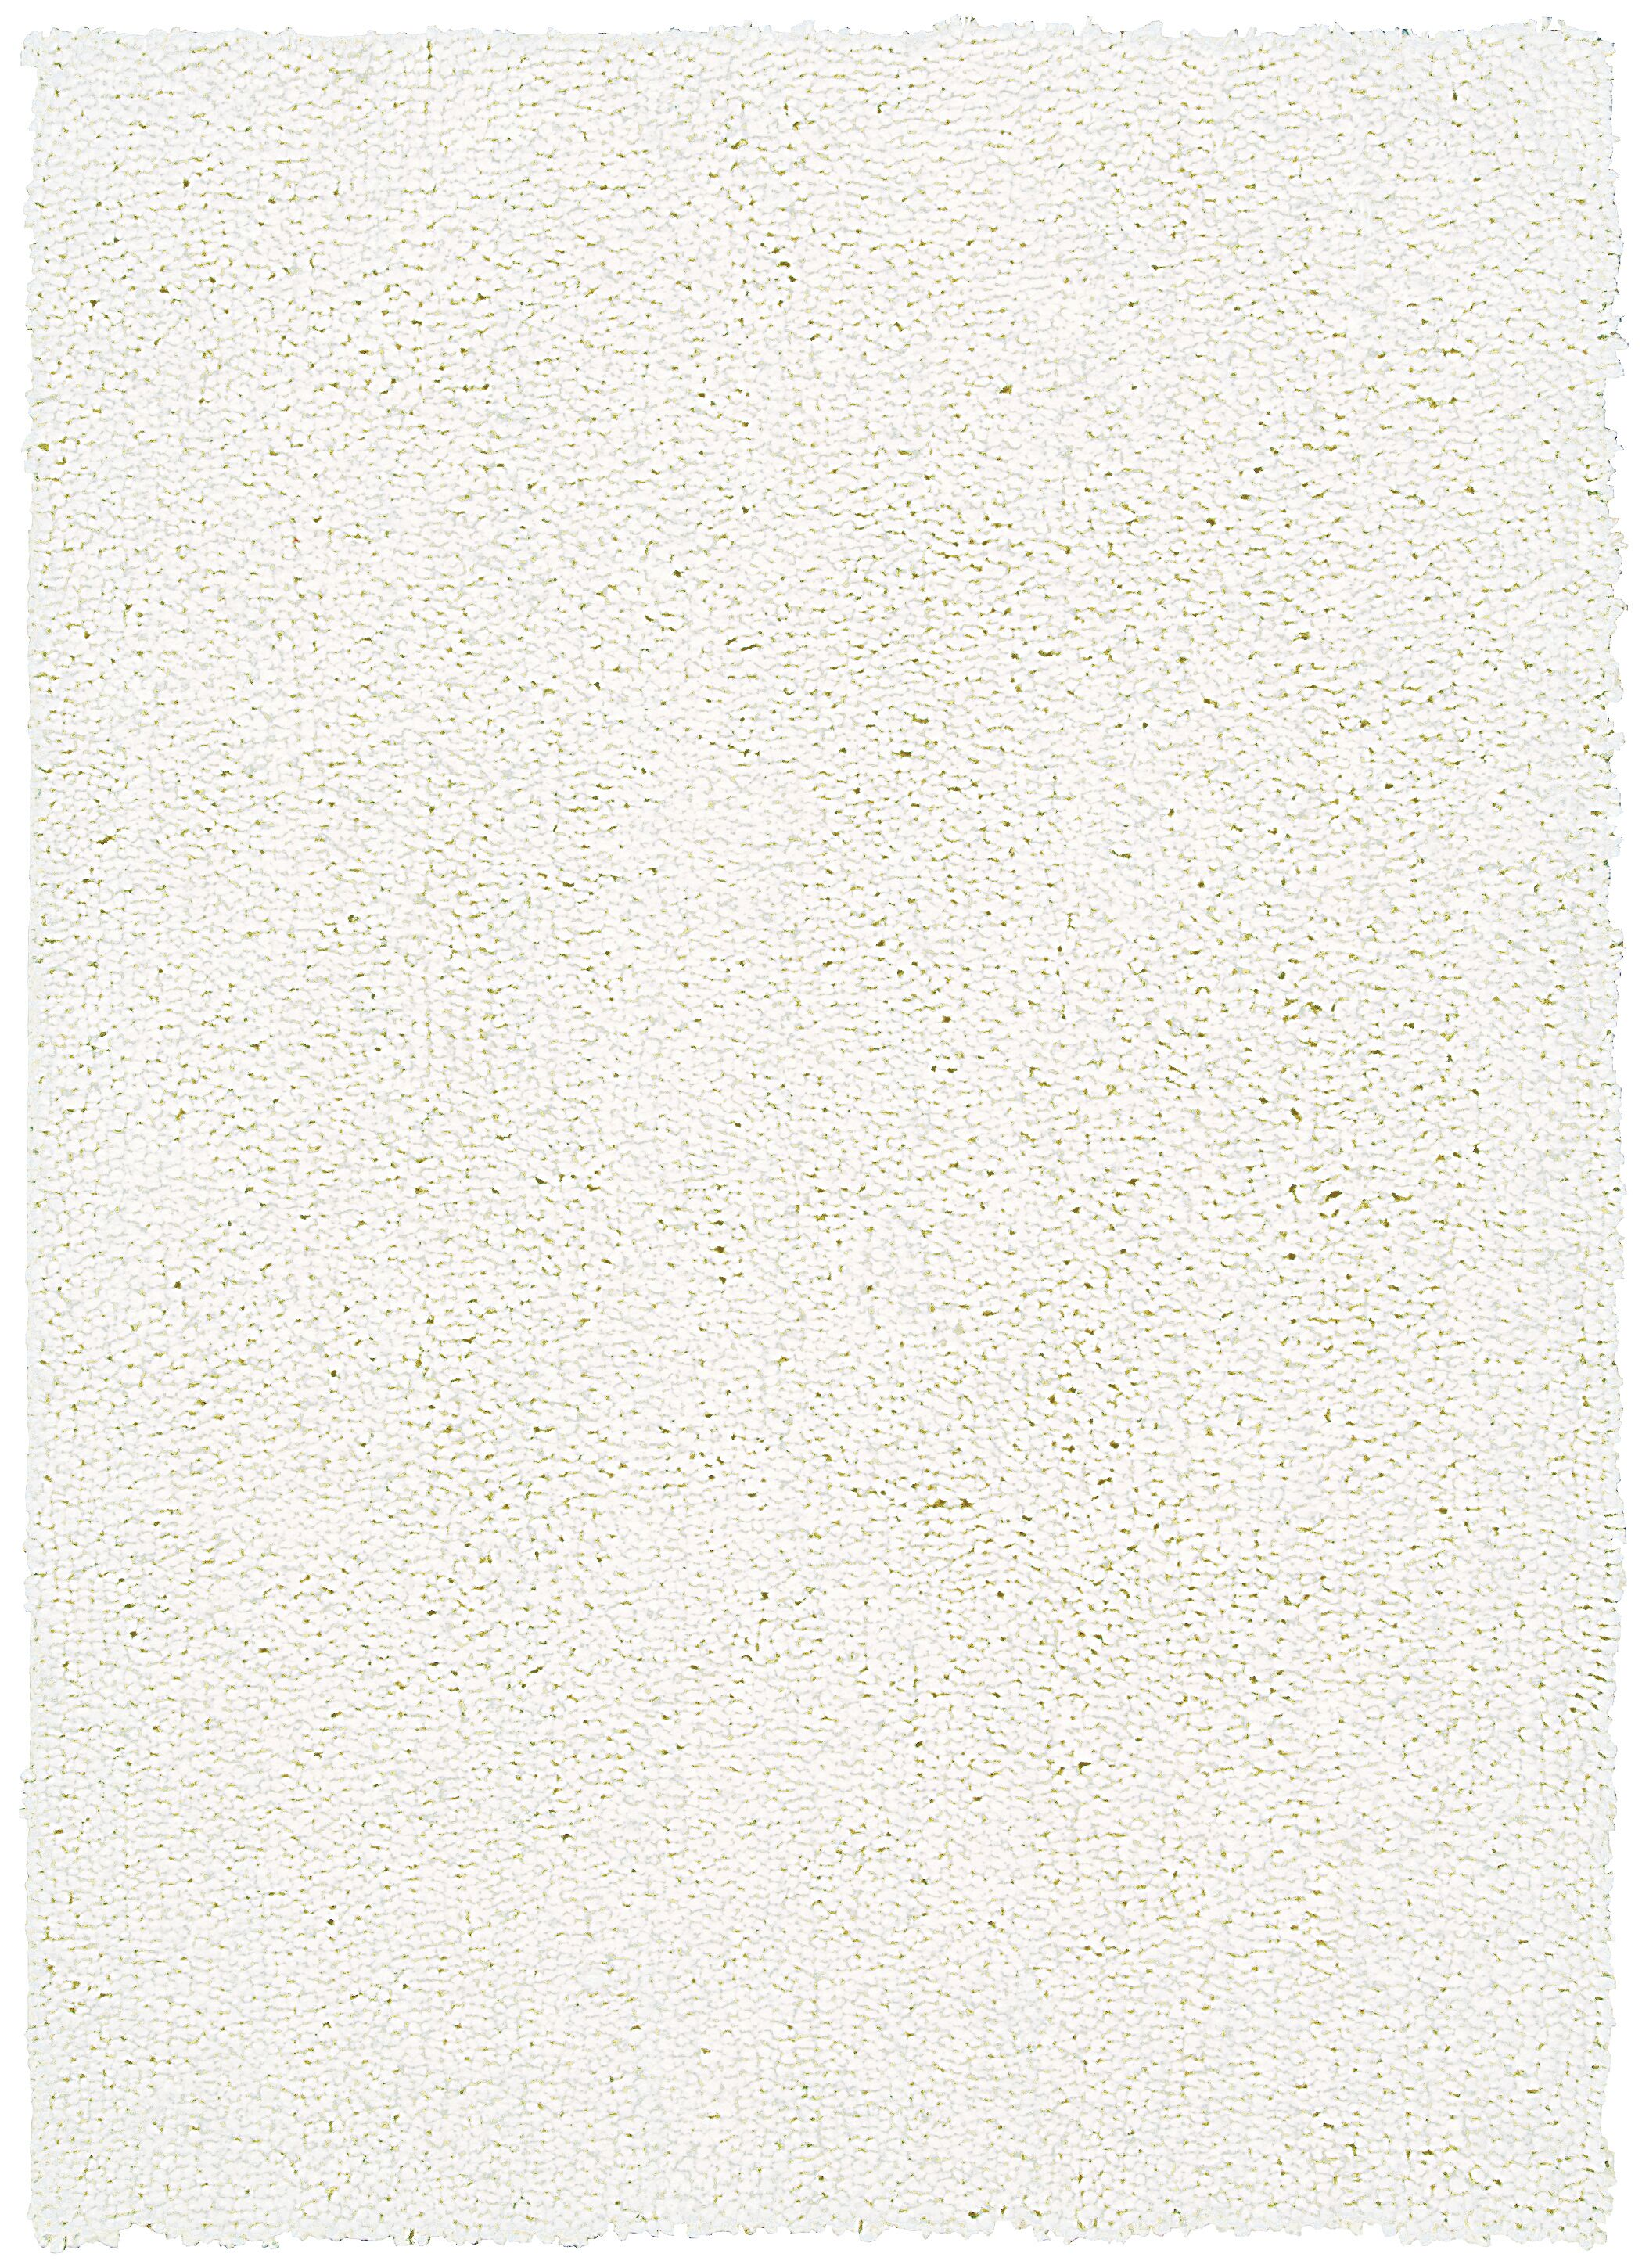 Carnlough North Hand-Woven White Area Rug Rug Size: Rectangle 4' x 6'